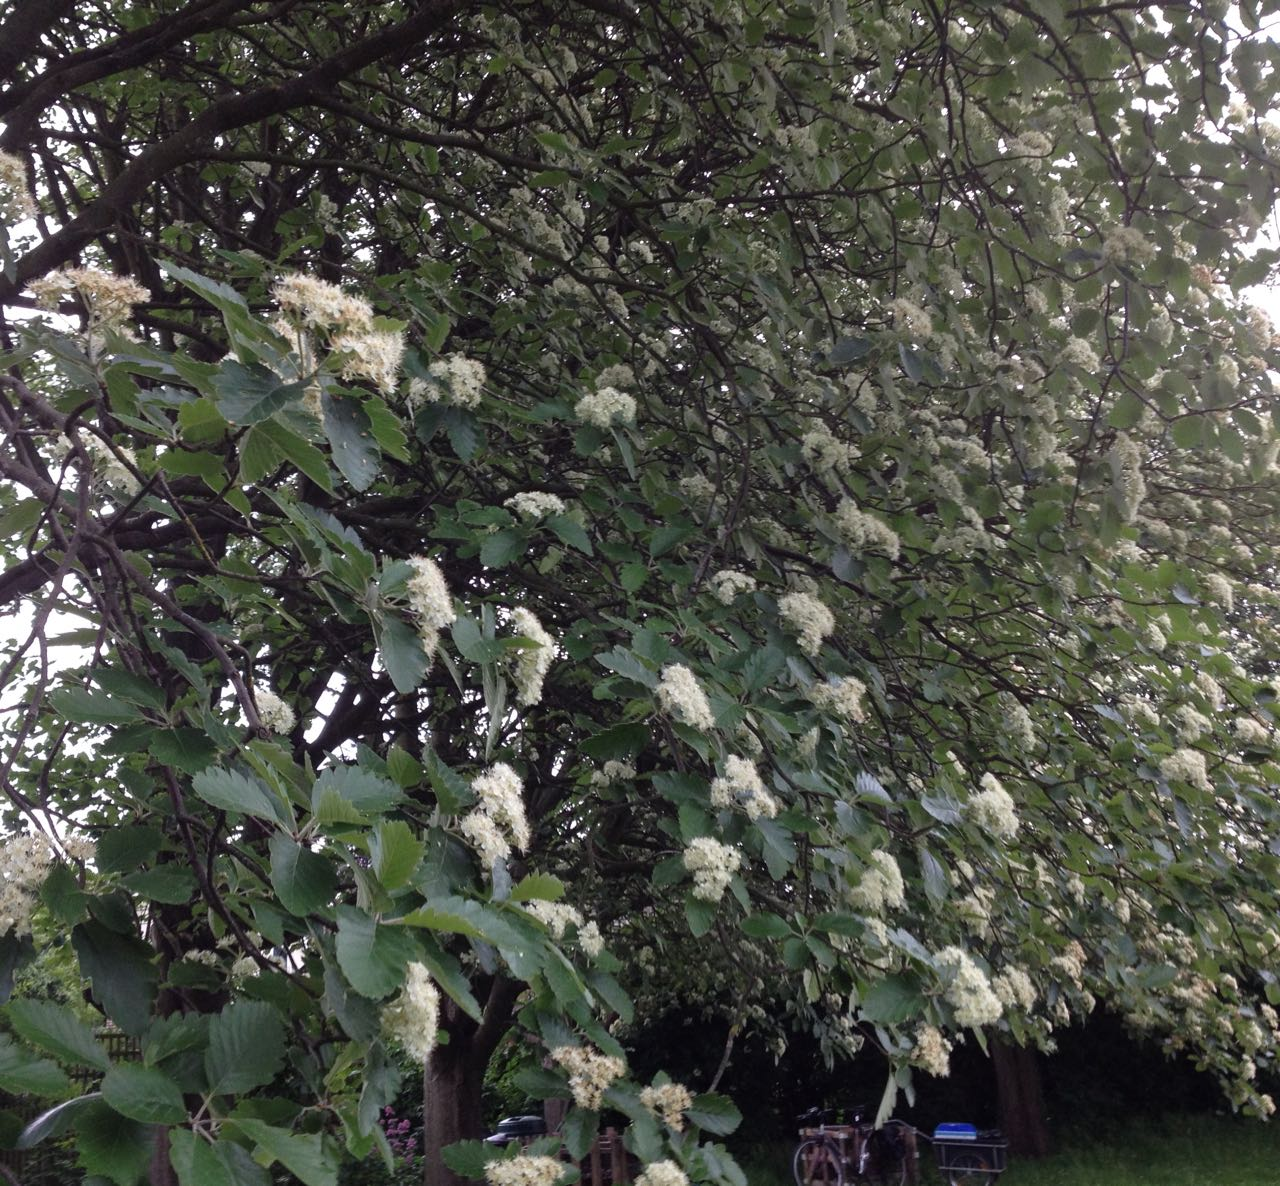 Beautiful blossom on the Whitebeam trees inside the bowling green but also extending into the main park